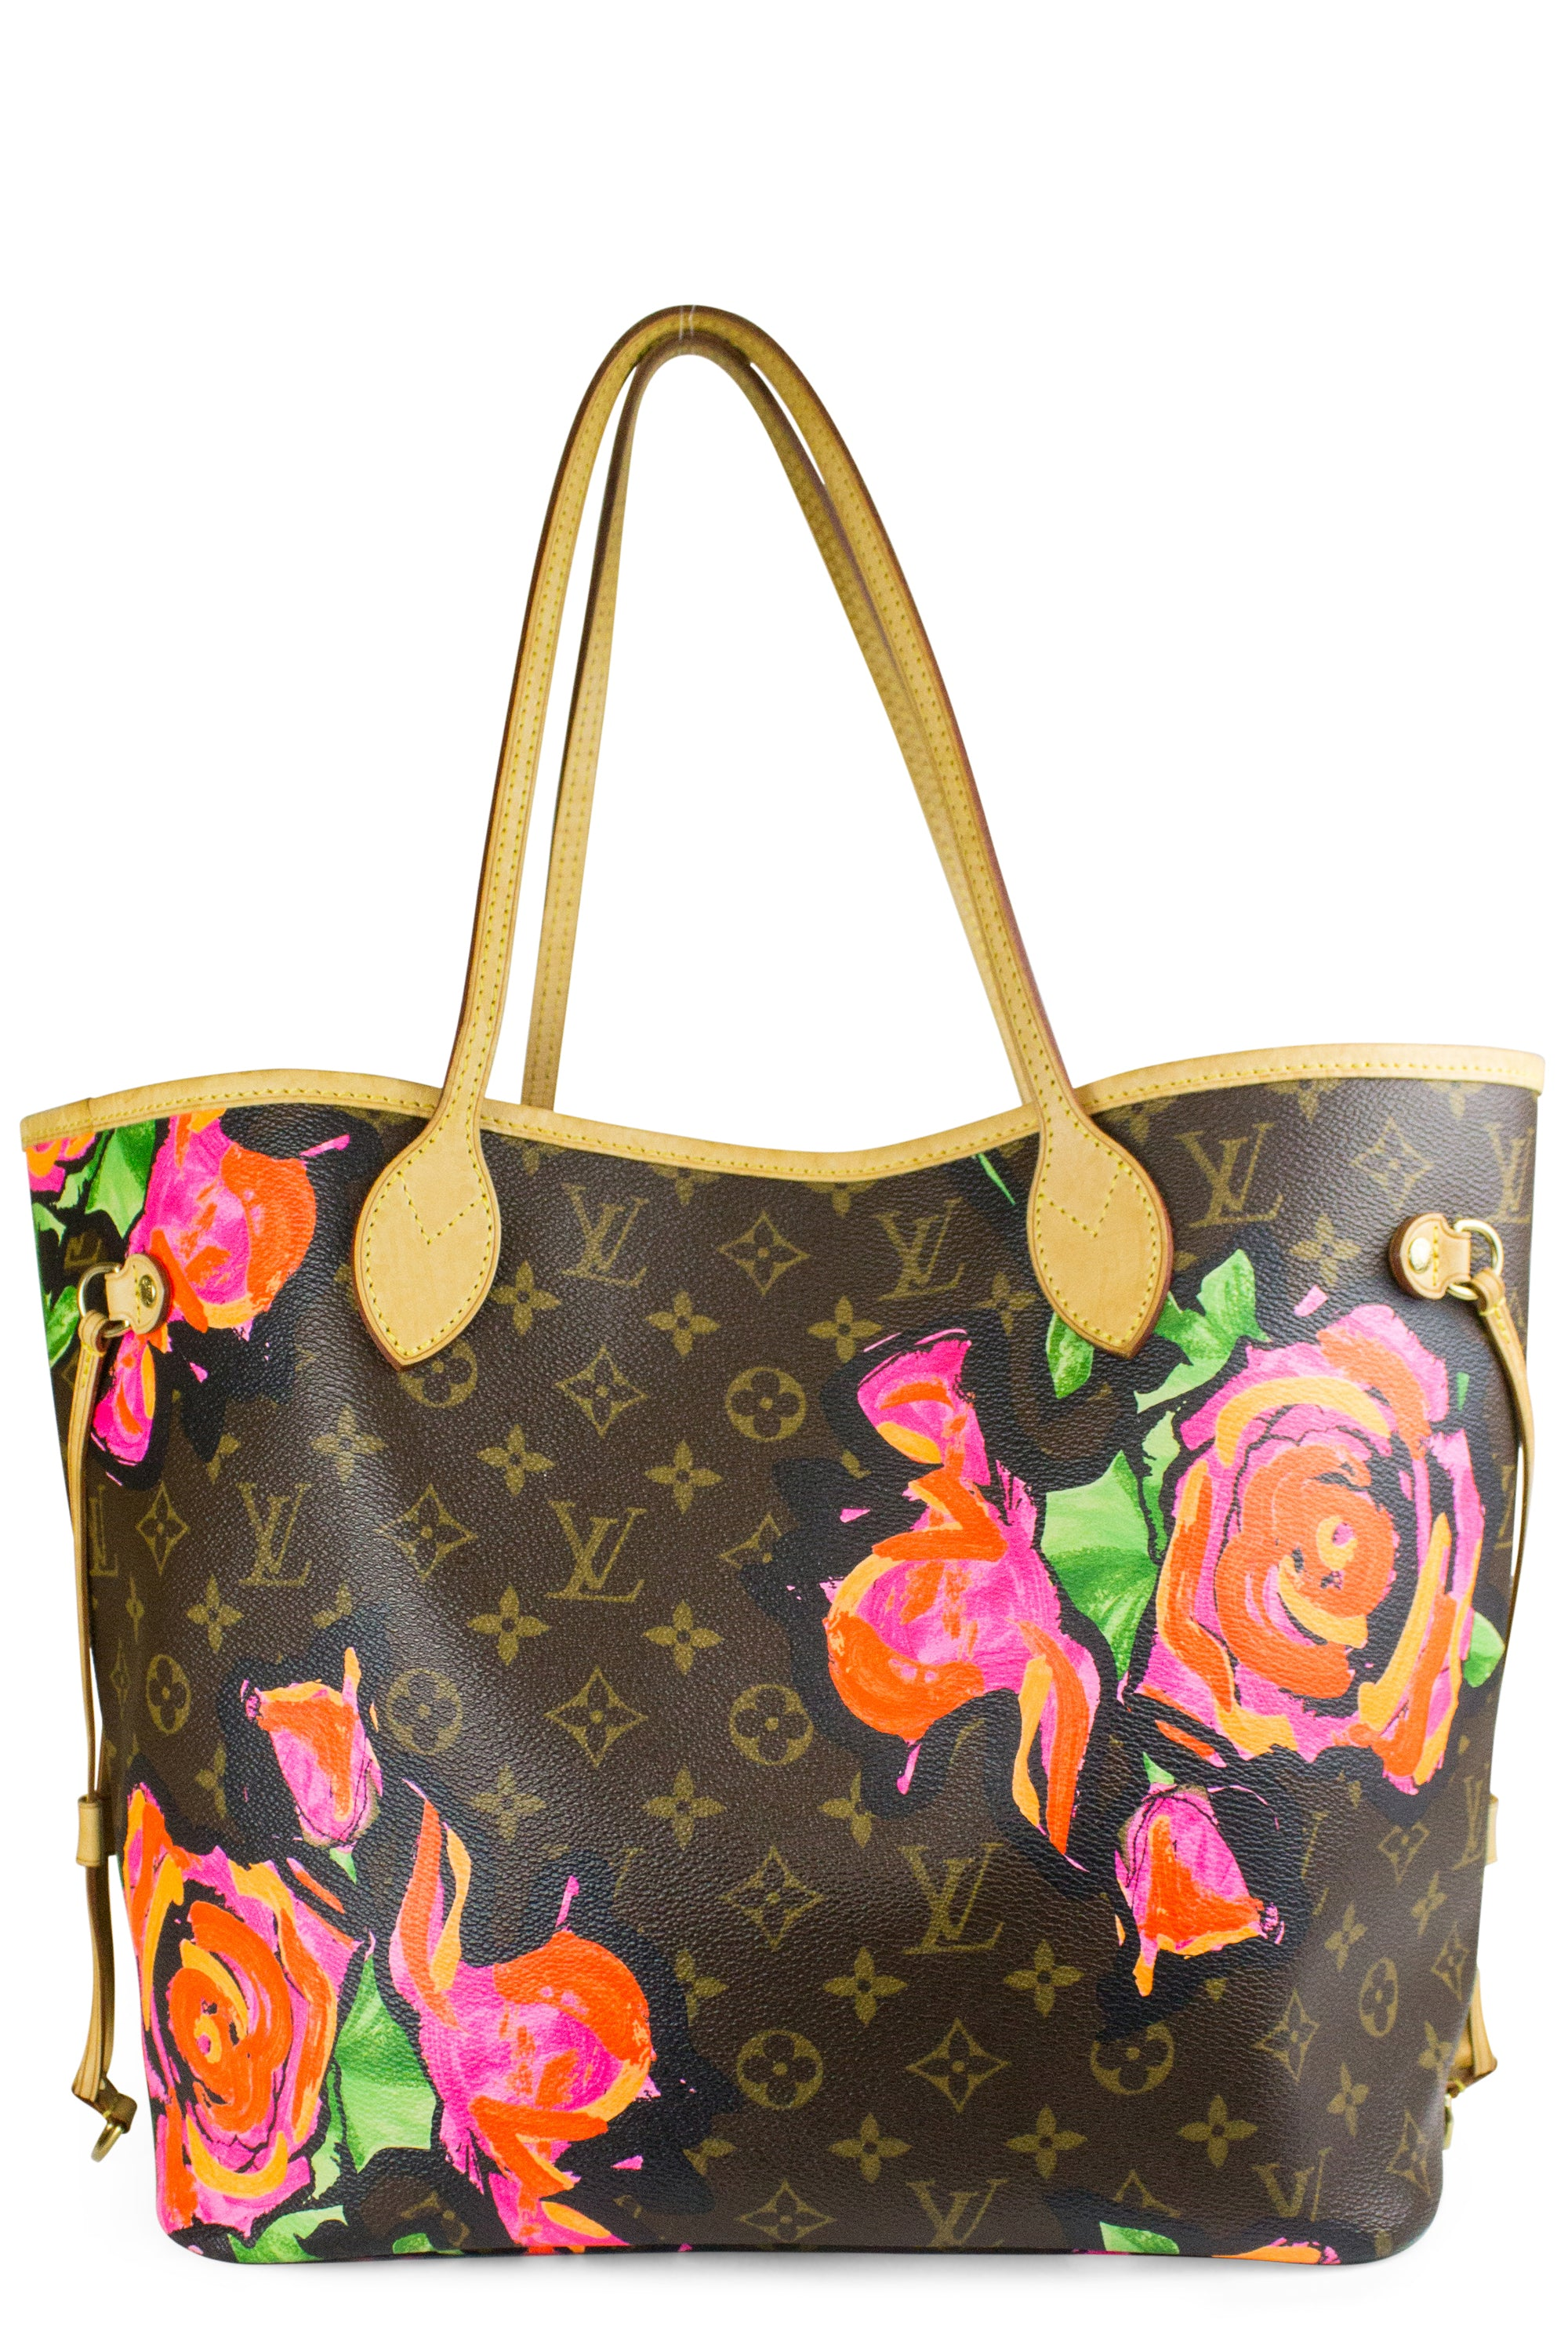 LOUIS VUITTON Stephen Sprouse Limited Edition Neverfull